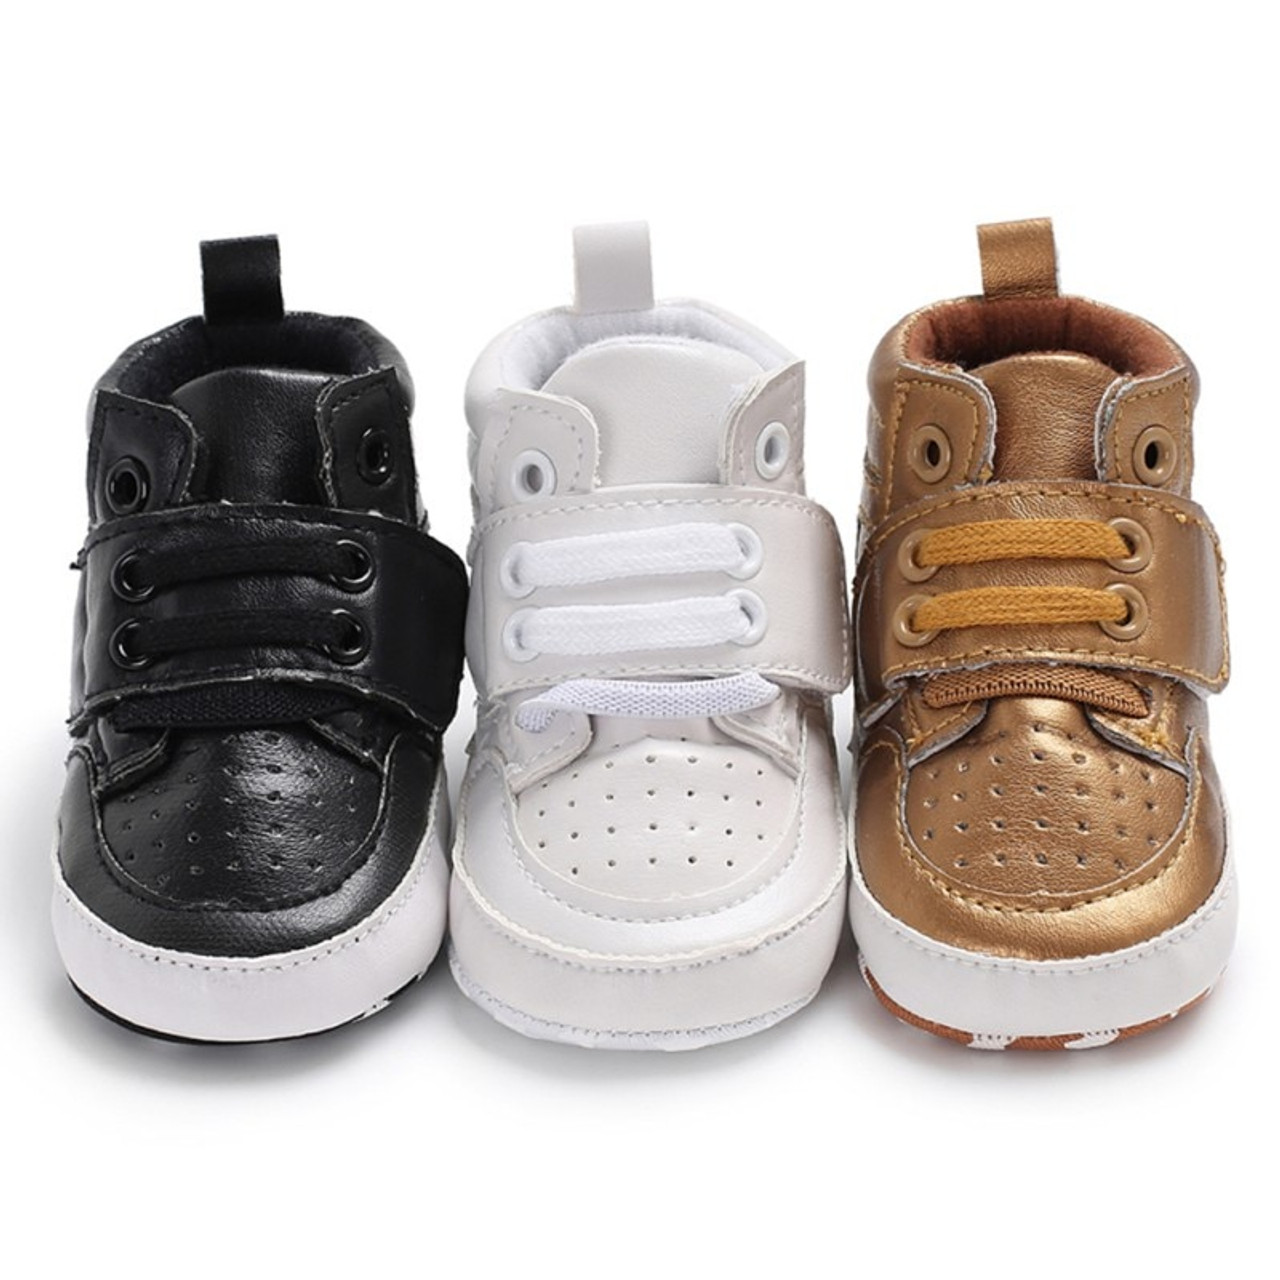 068f7d213 ... Newborn Kids Sneakers Baby Boys Shoes High Top Solid Soft Sole First  Walkers Infant Toddler Antislip ...